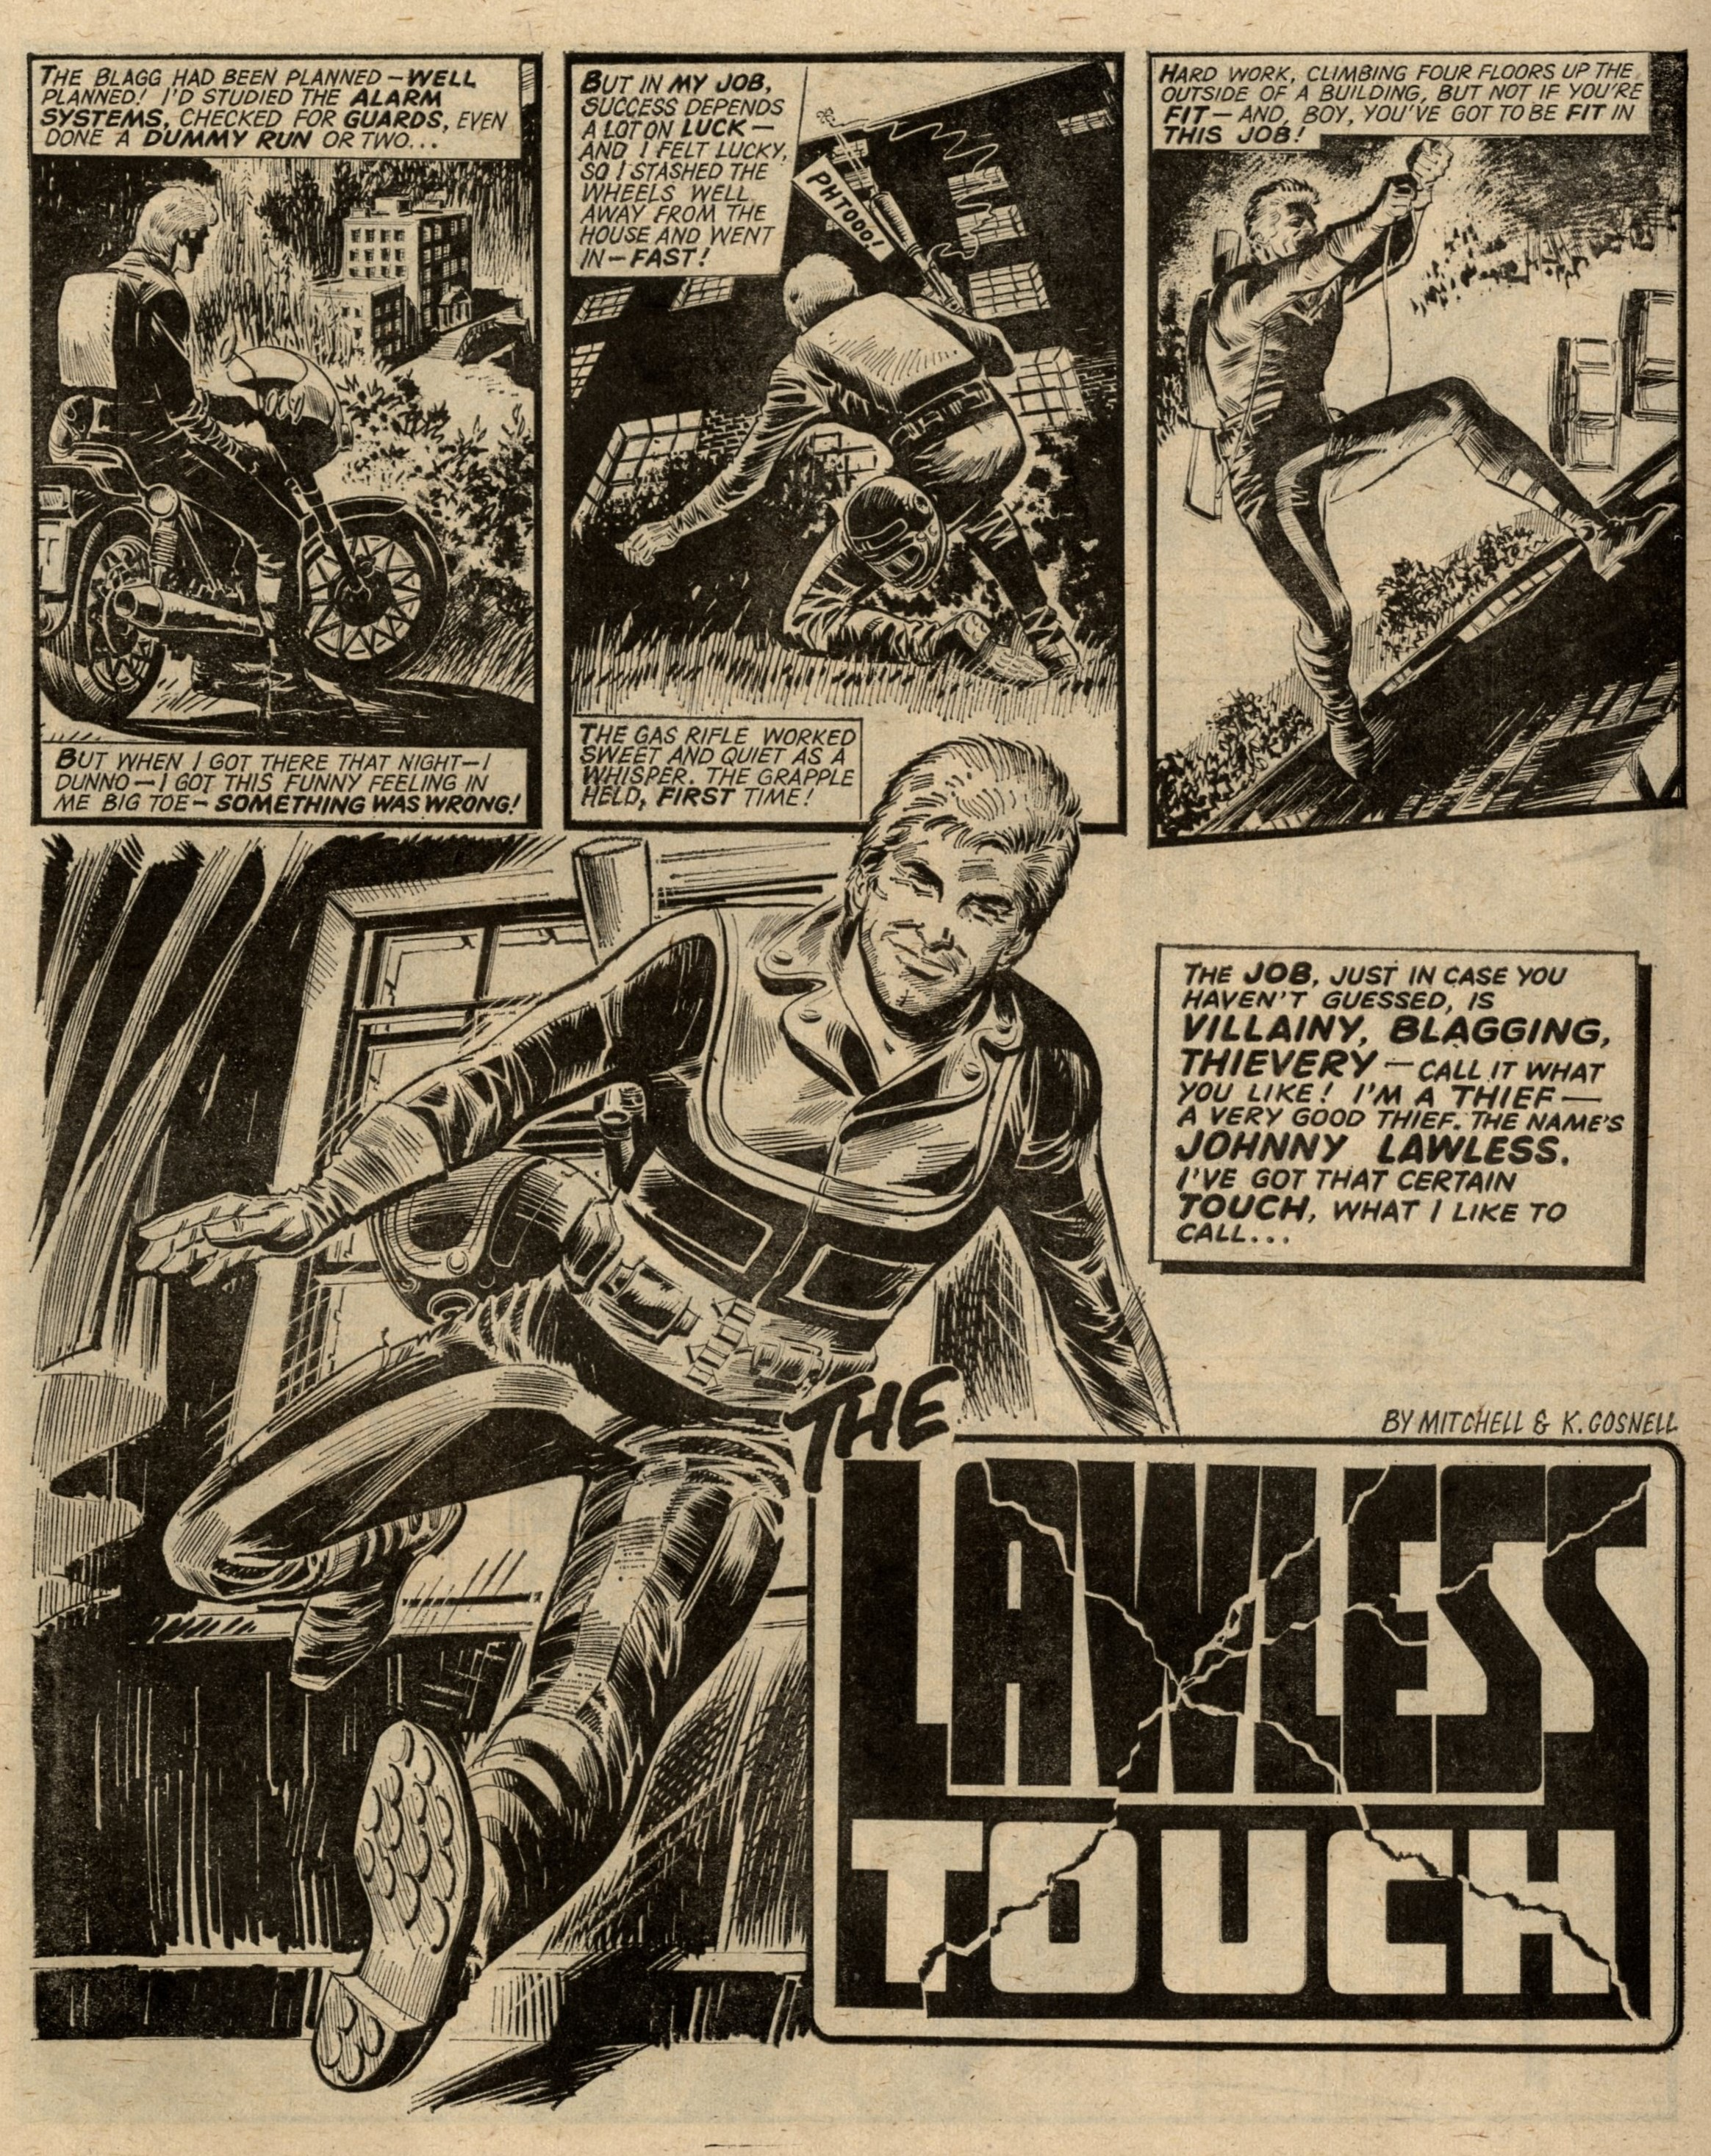 The Lawless Touch: Kelvin Gosnell (writer), Barrie Mitchell (artist)